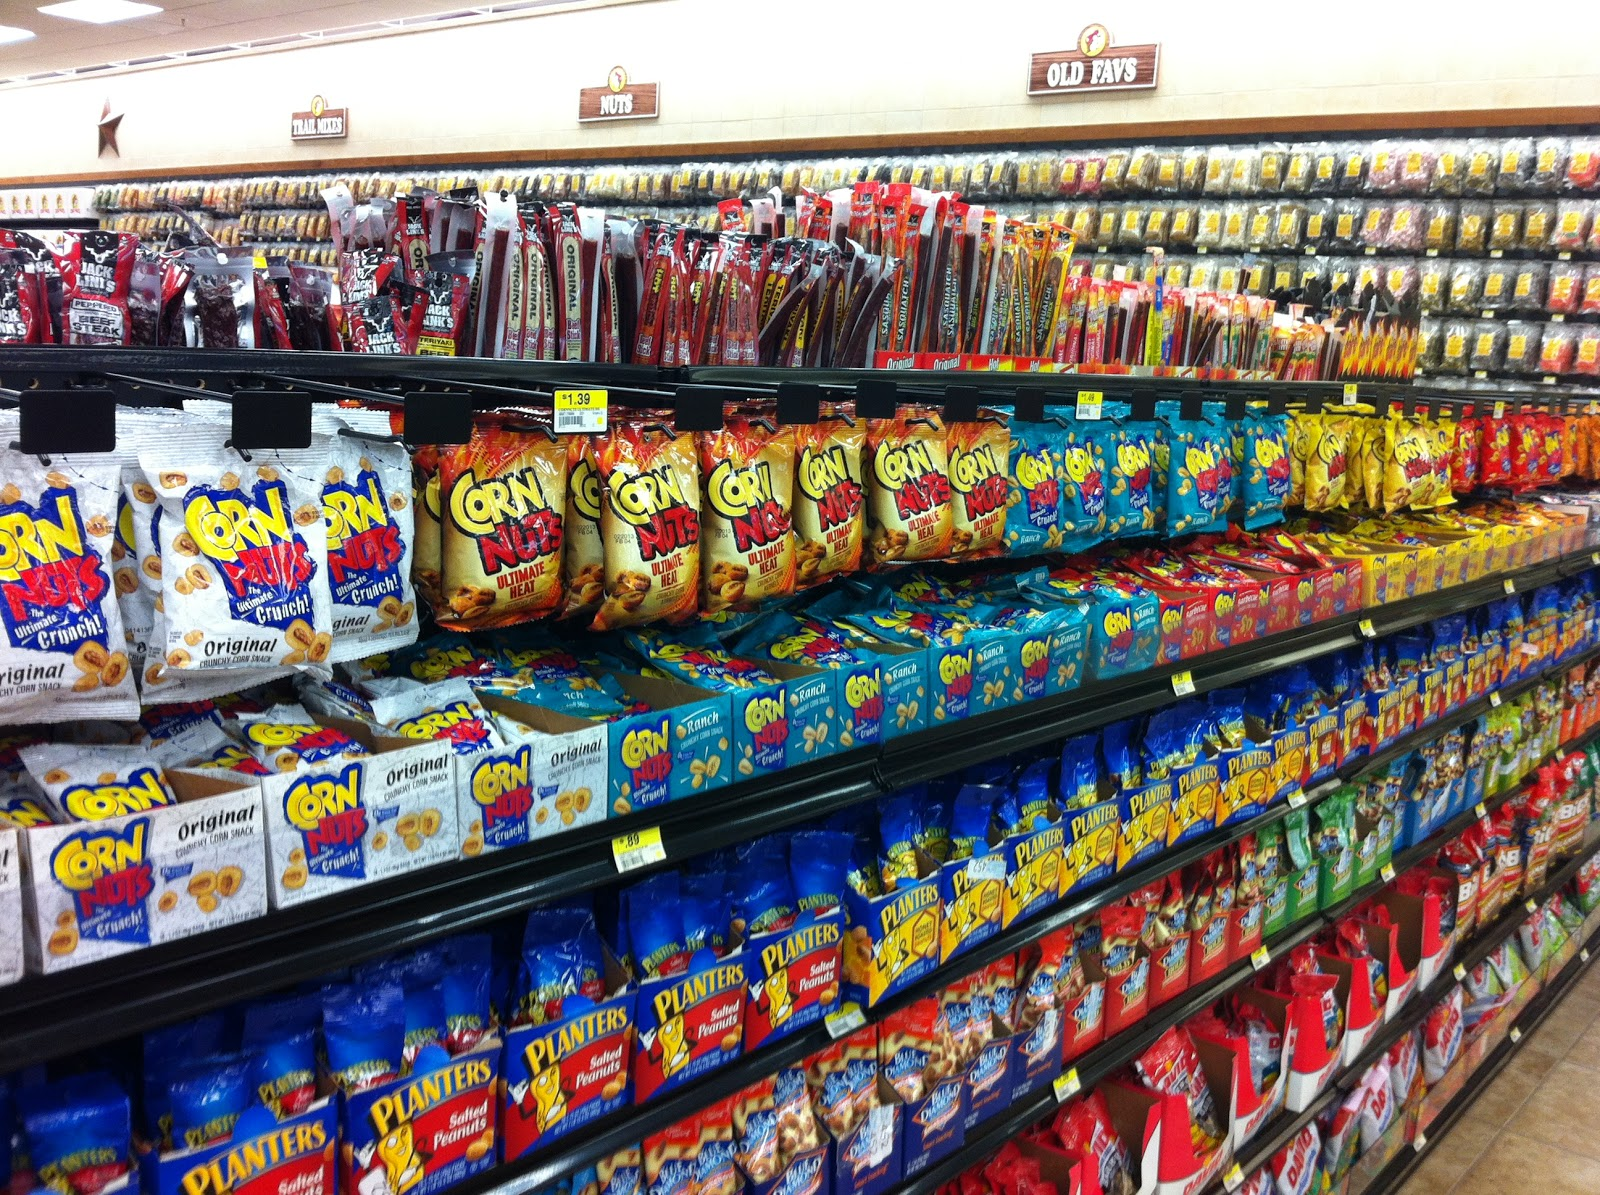 An entire row dedicated to Corn Nuts. Jeannie s Obsessions  October 2012